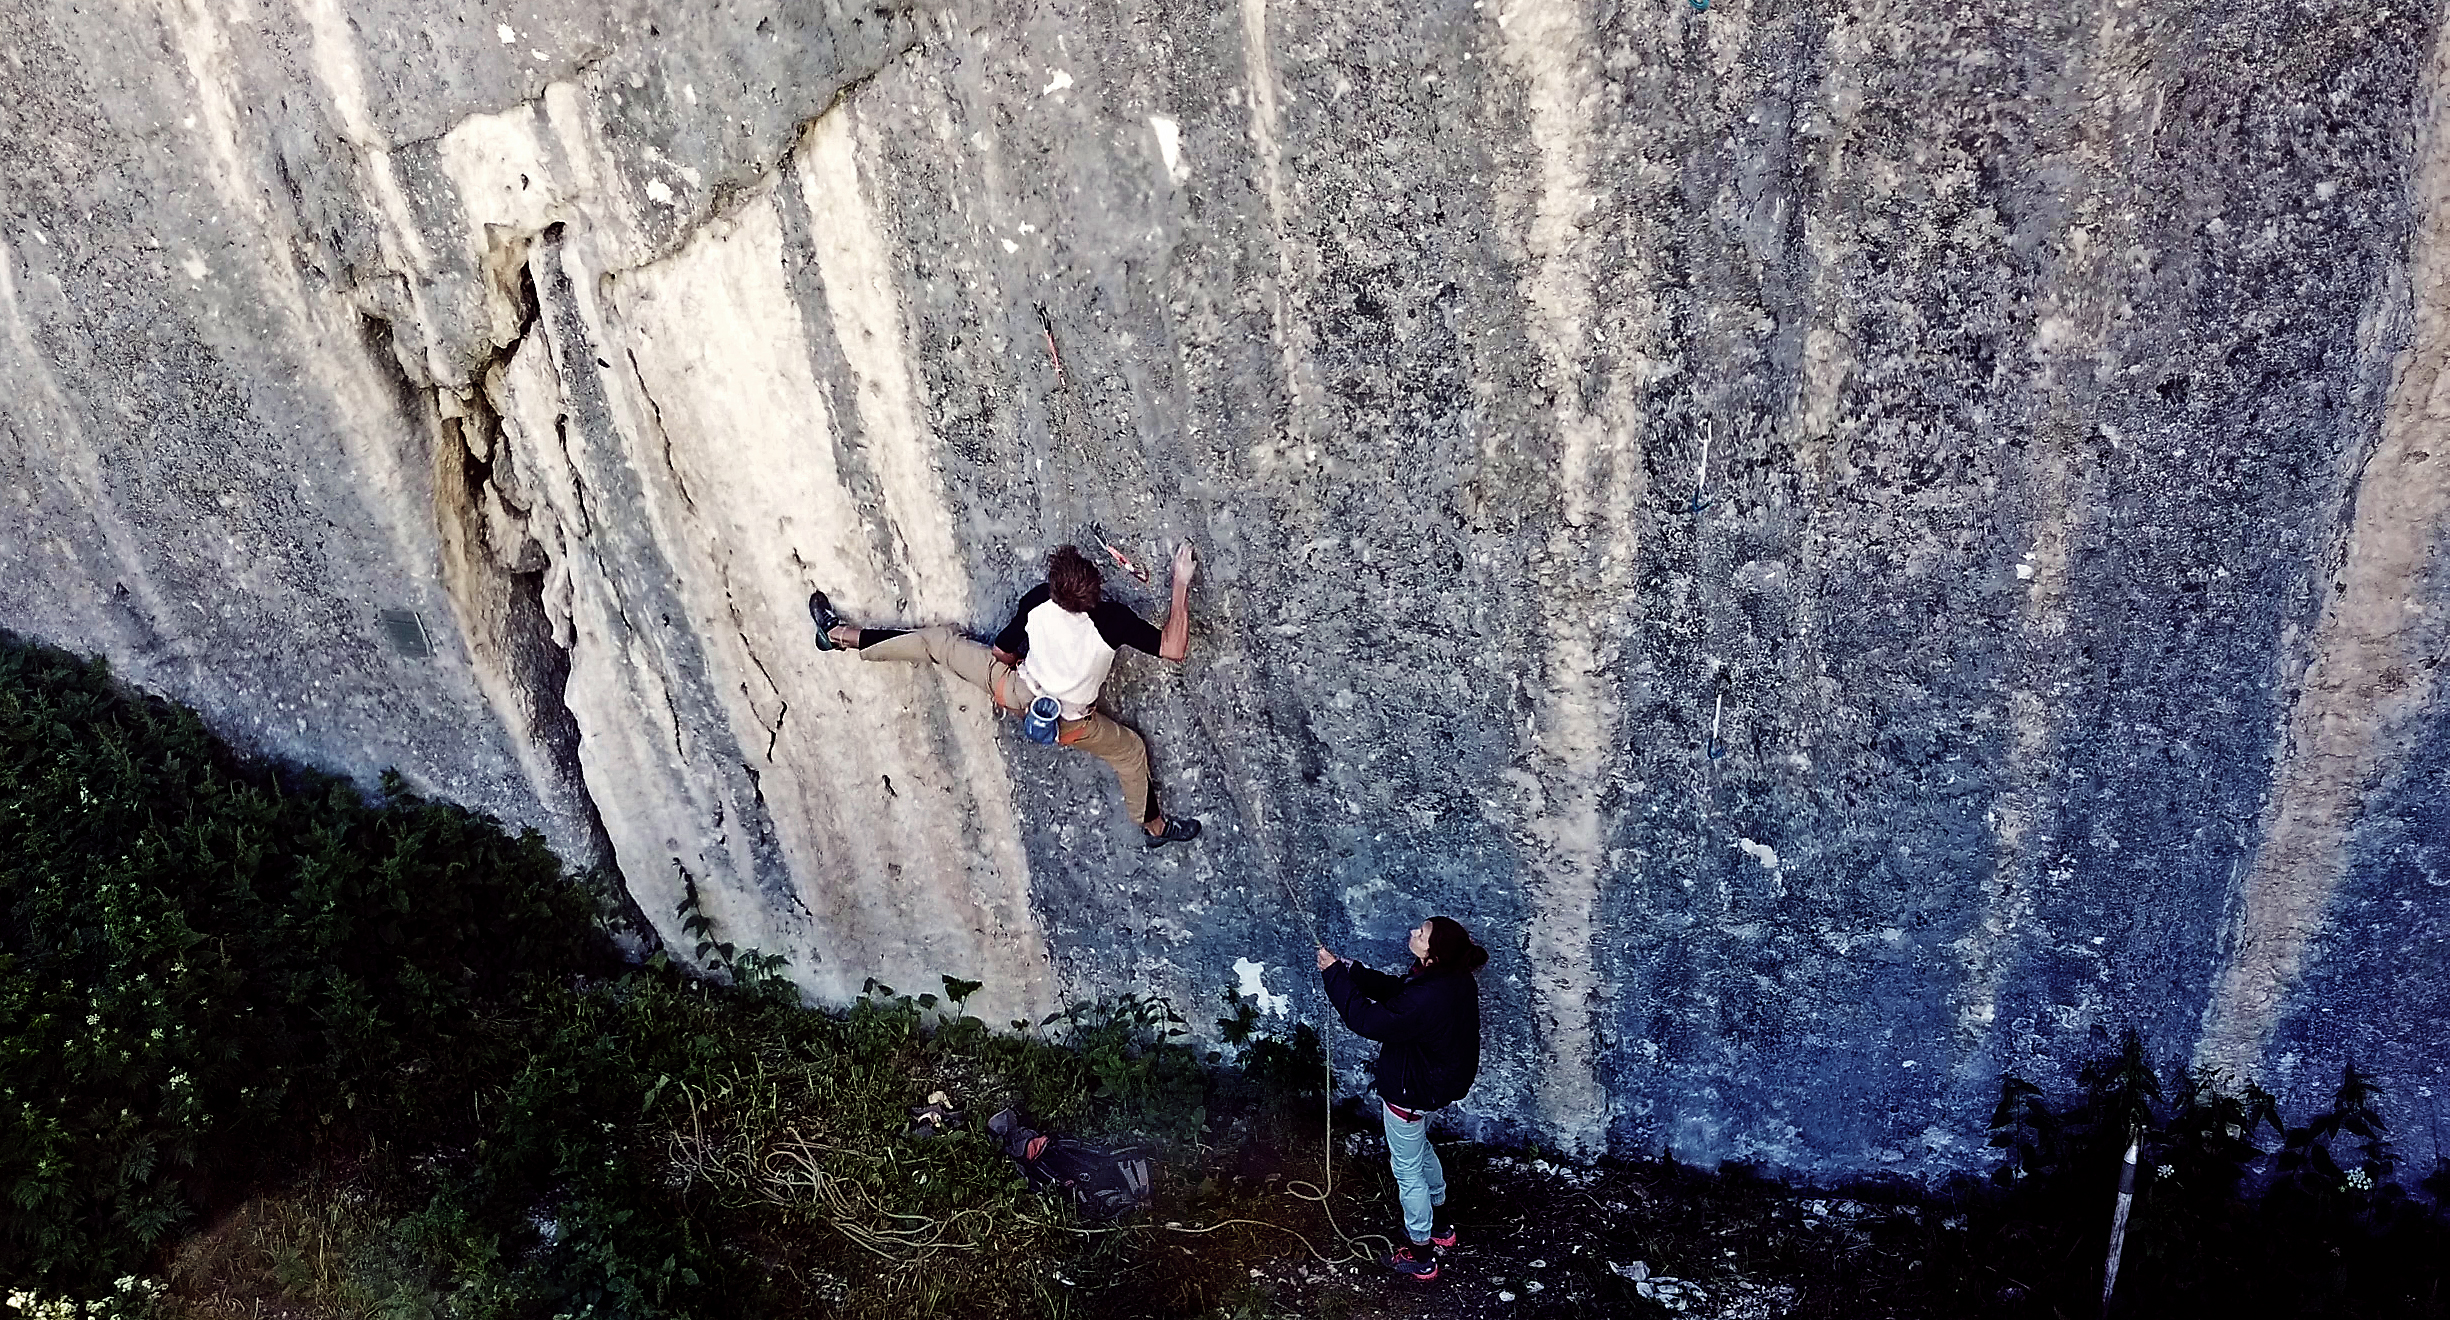 The art of self handicapping – A log book of the hardest ascent in my life: La Barrière (9b) in Jansegg.